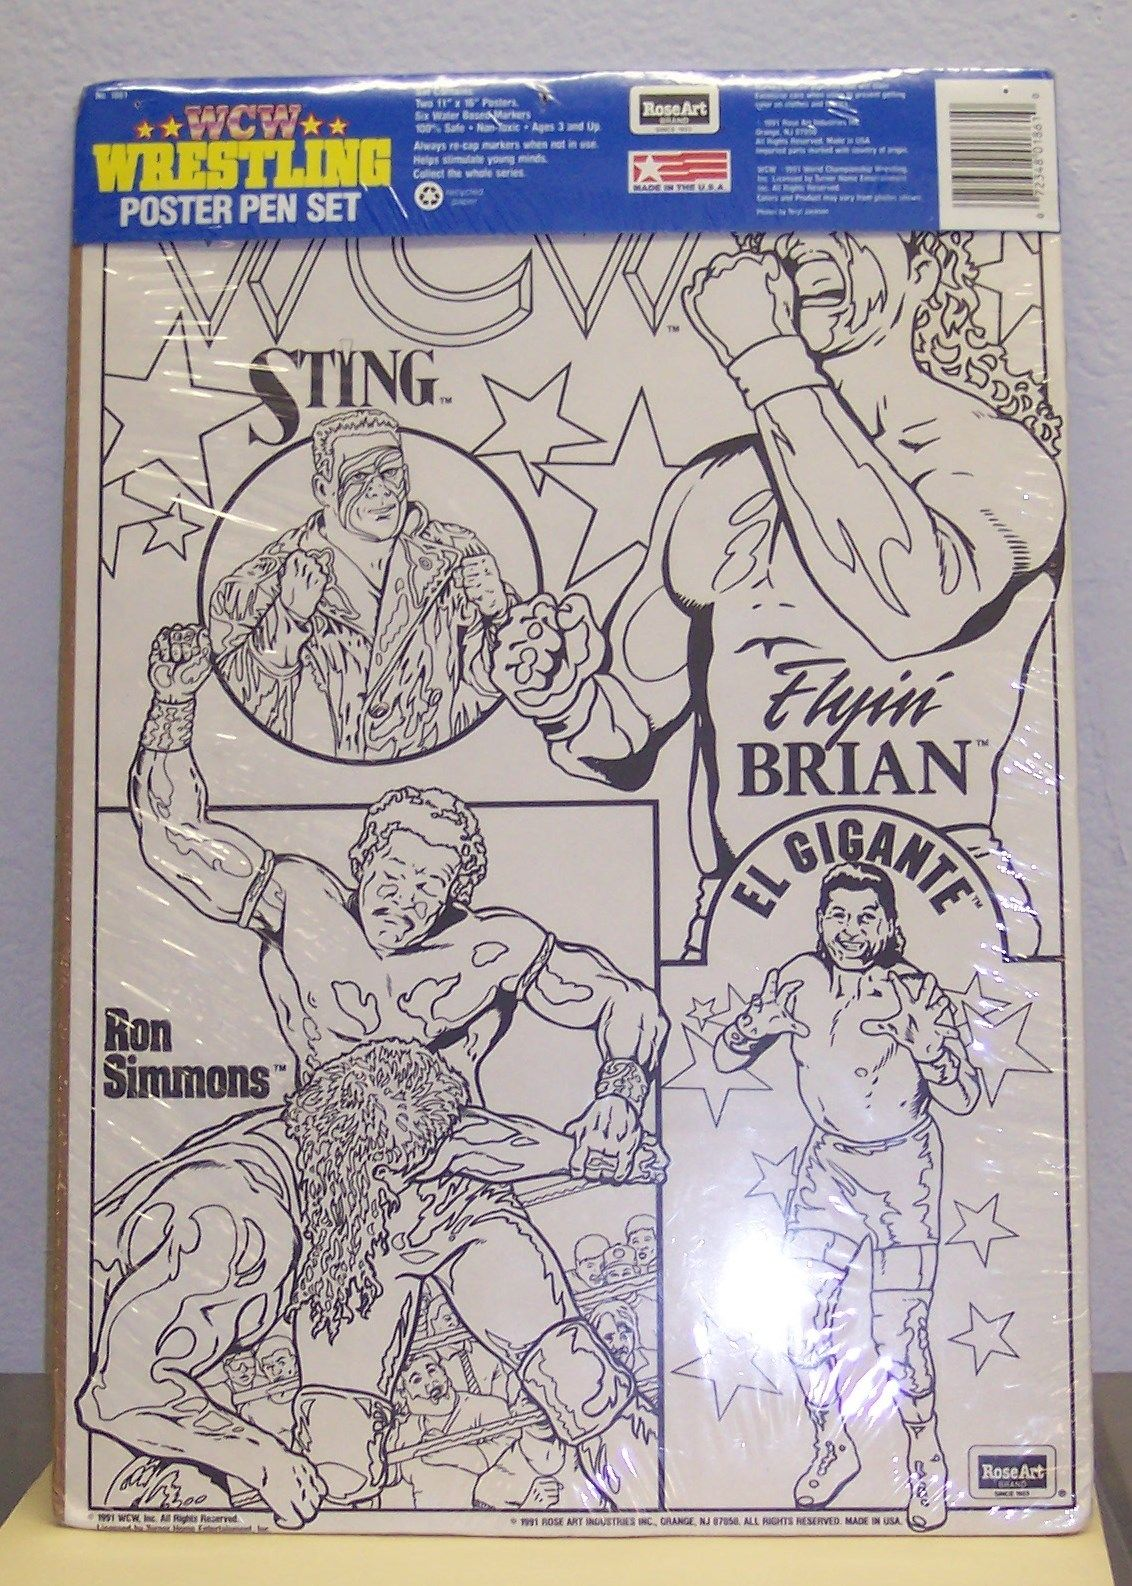 WCW RoseArt Wrestling Poster Pen Set 2